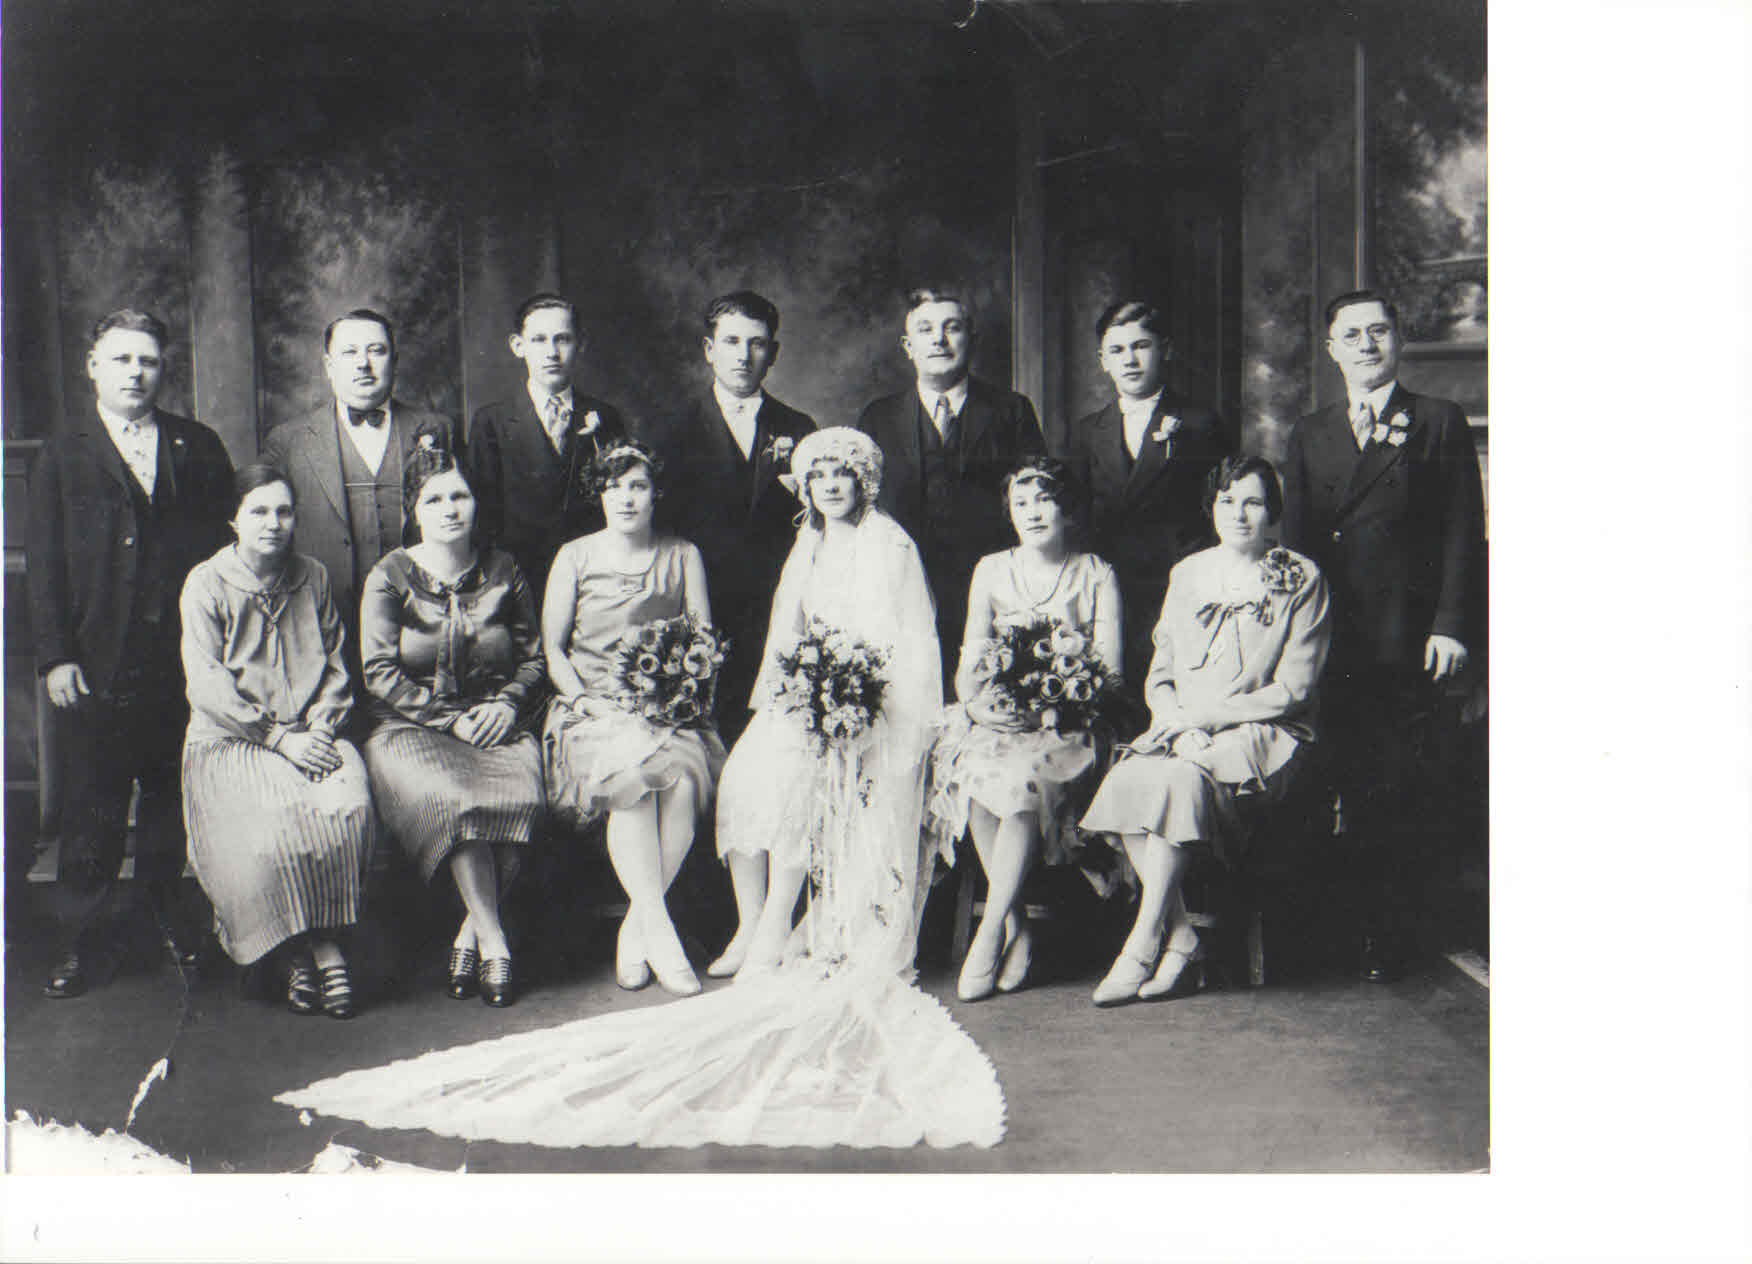 My grandparents wedding, Feb. 16, 1929.